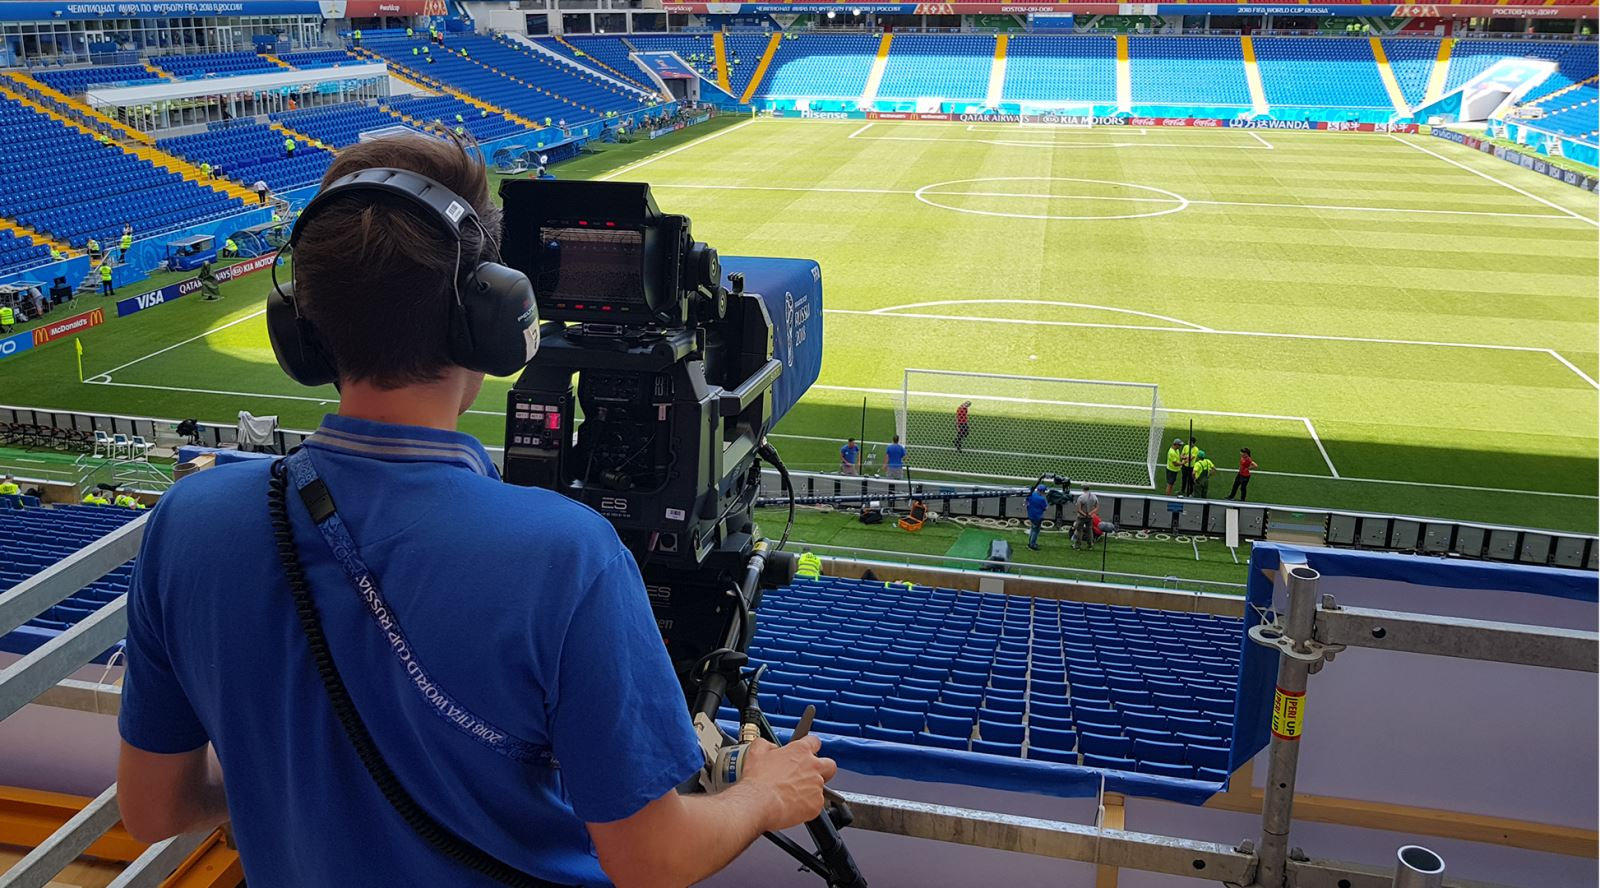 GTC member Stef de Backer working as a camera assistant on the FIFA World Cup in Russia